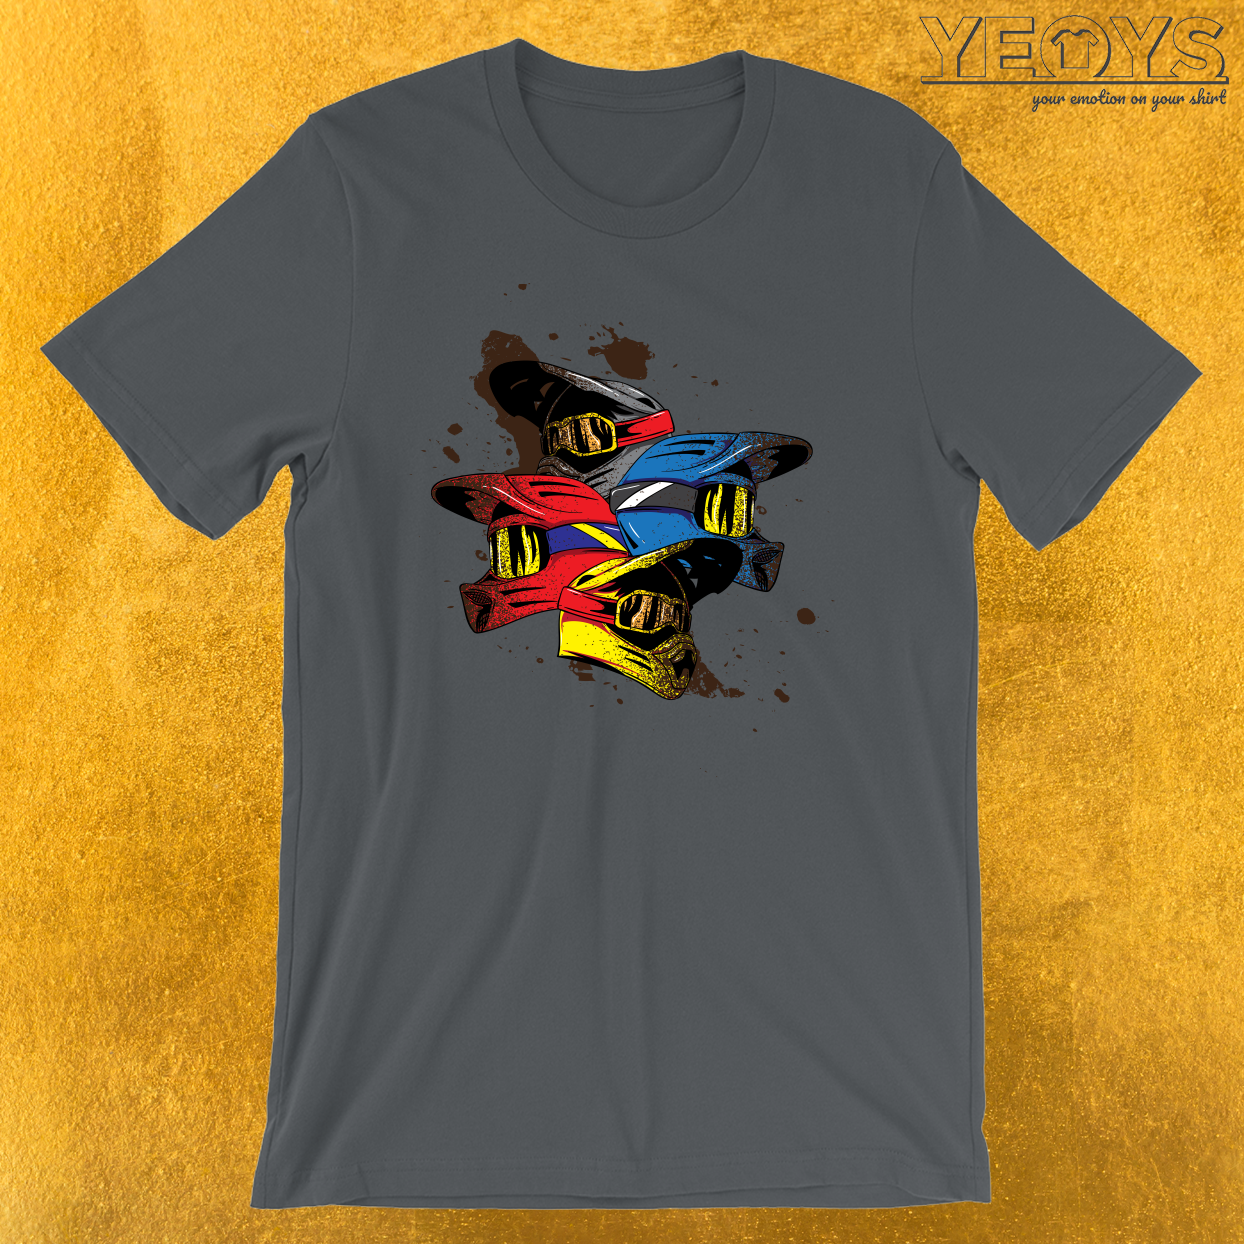 Motocross Rules T-Shirt